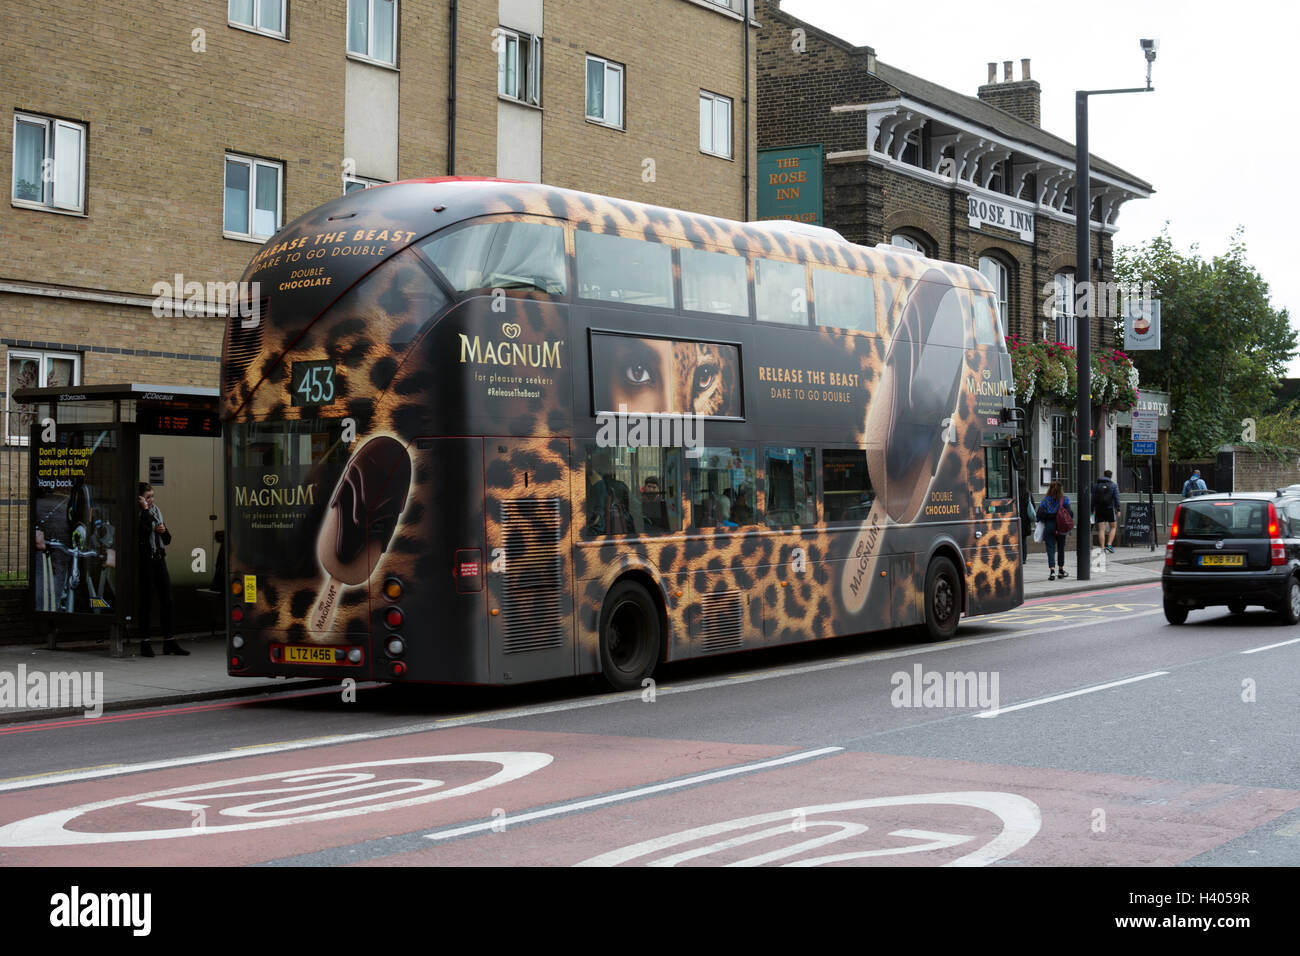 Routemaster bus with Magnum ice cream livery, New Cross Road, London, UK - Stock Image